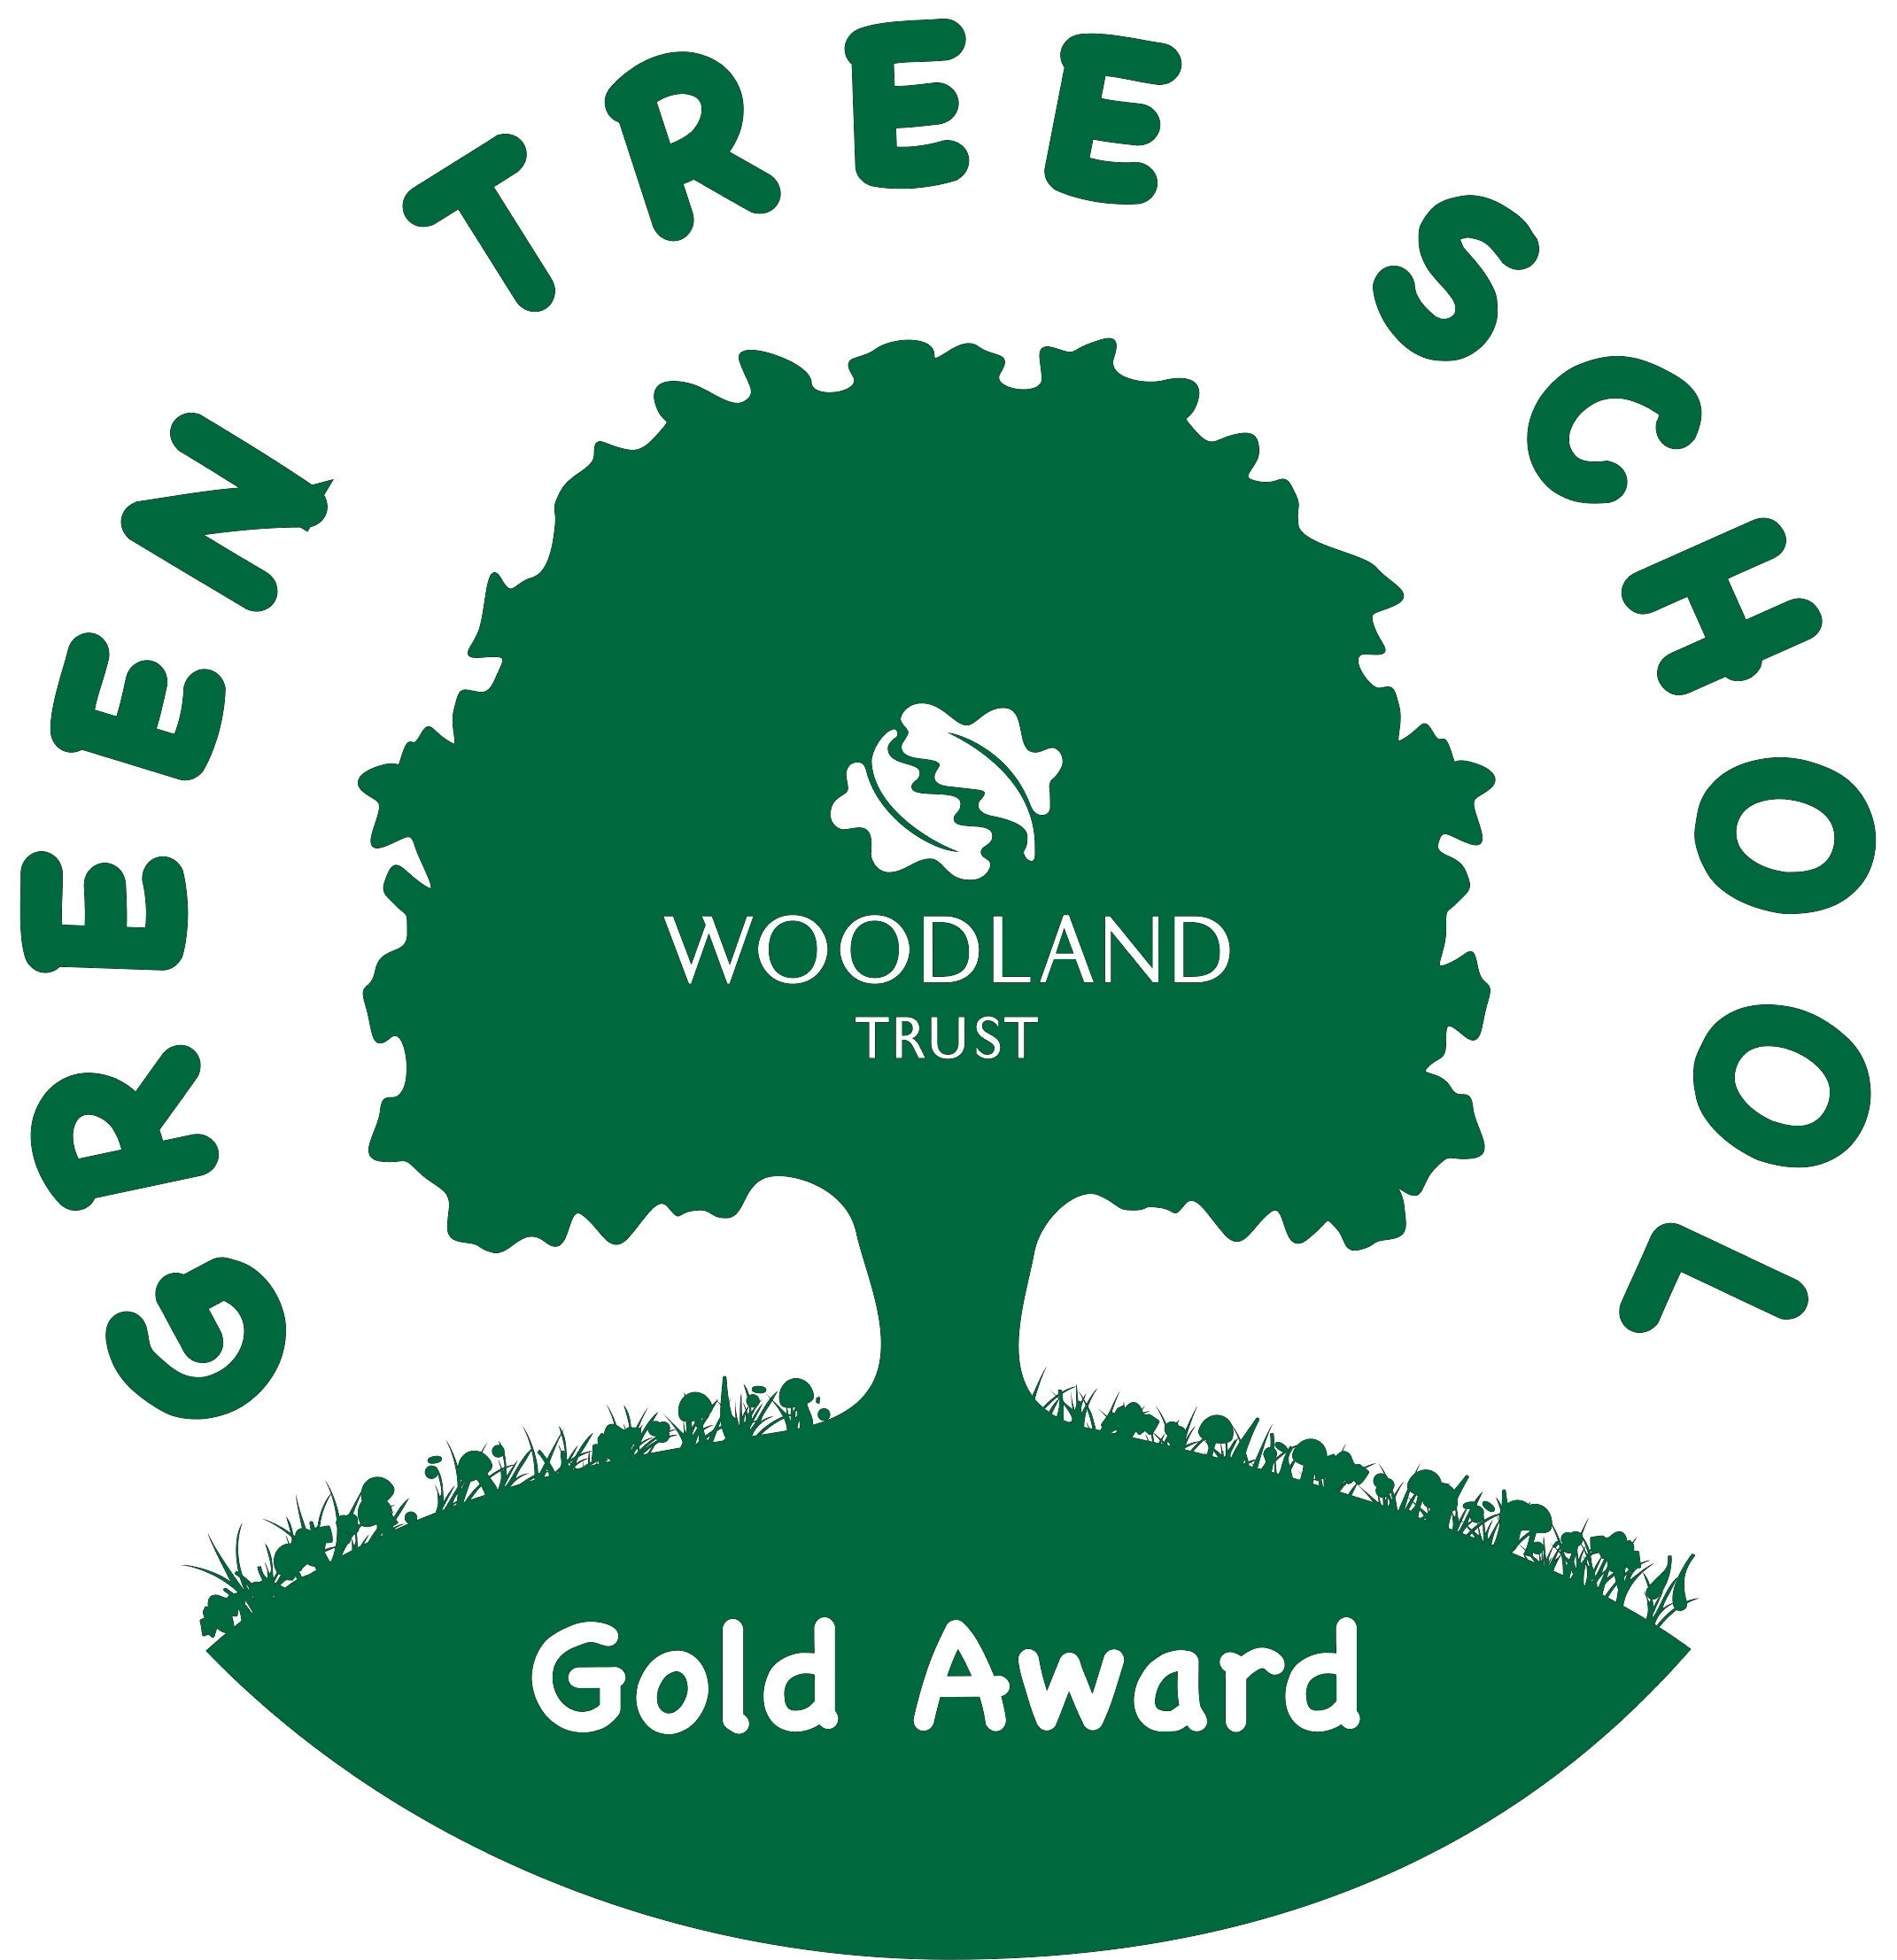 Woodland Trust Green Tree School Award Woodland trust logo